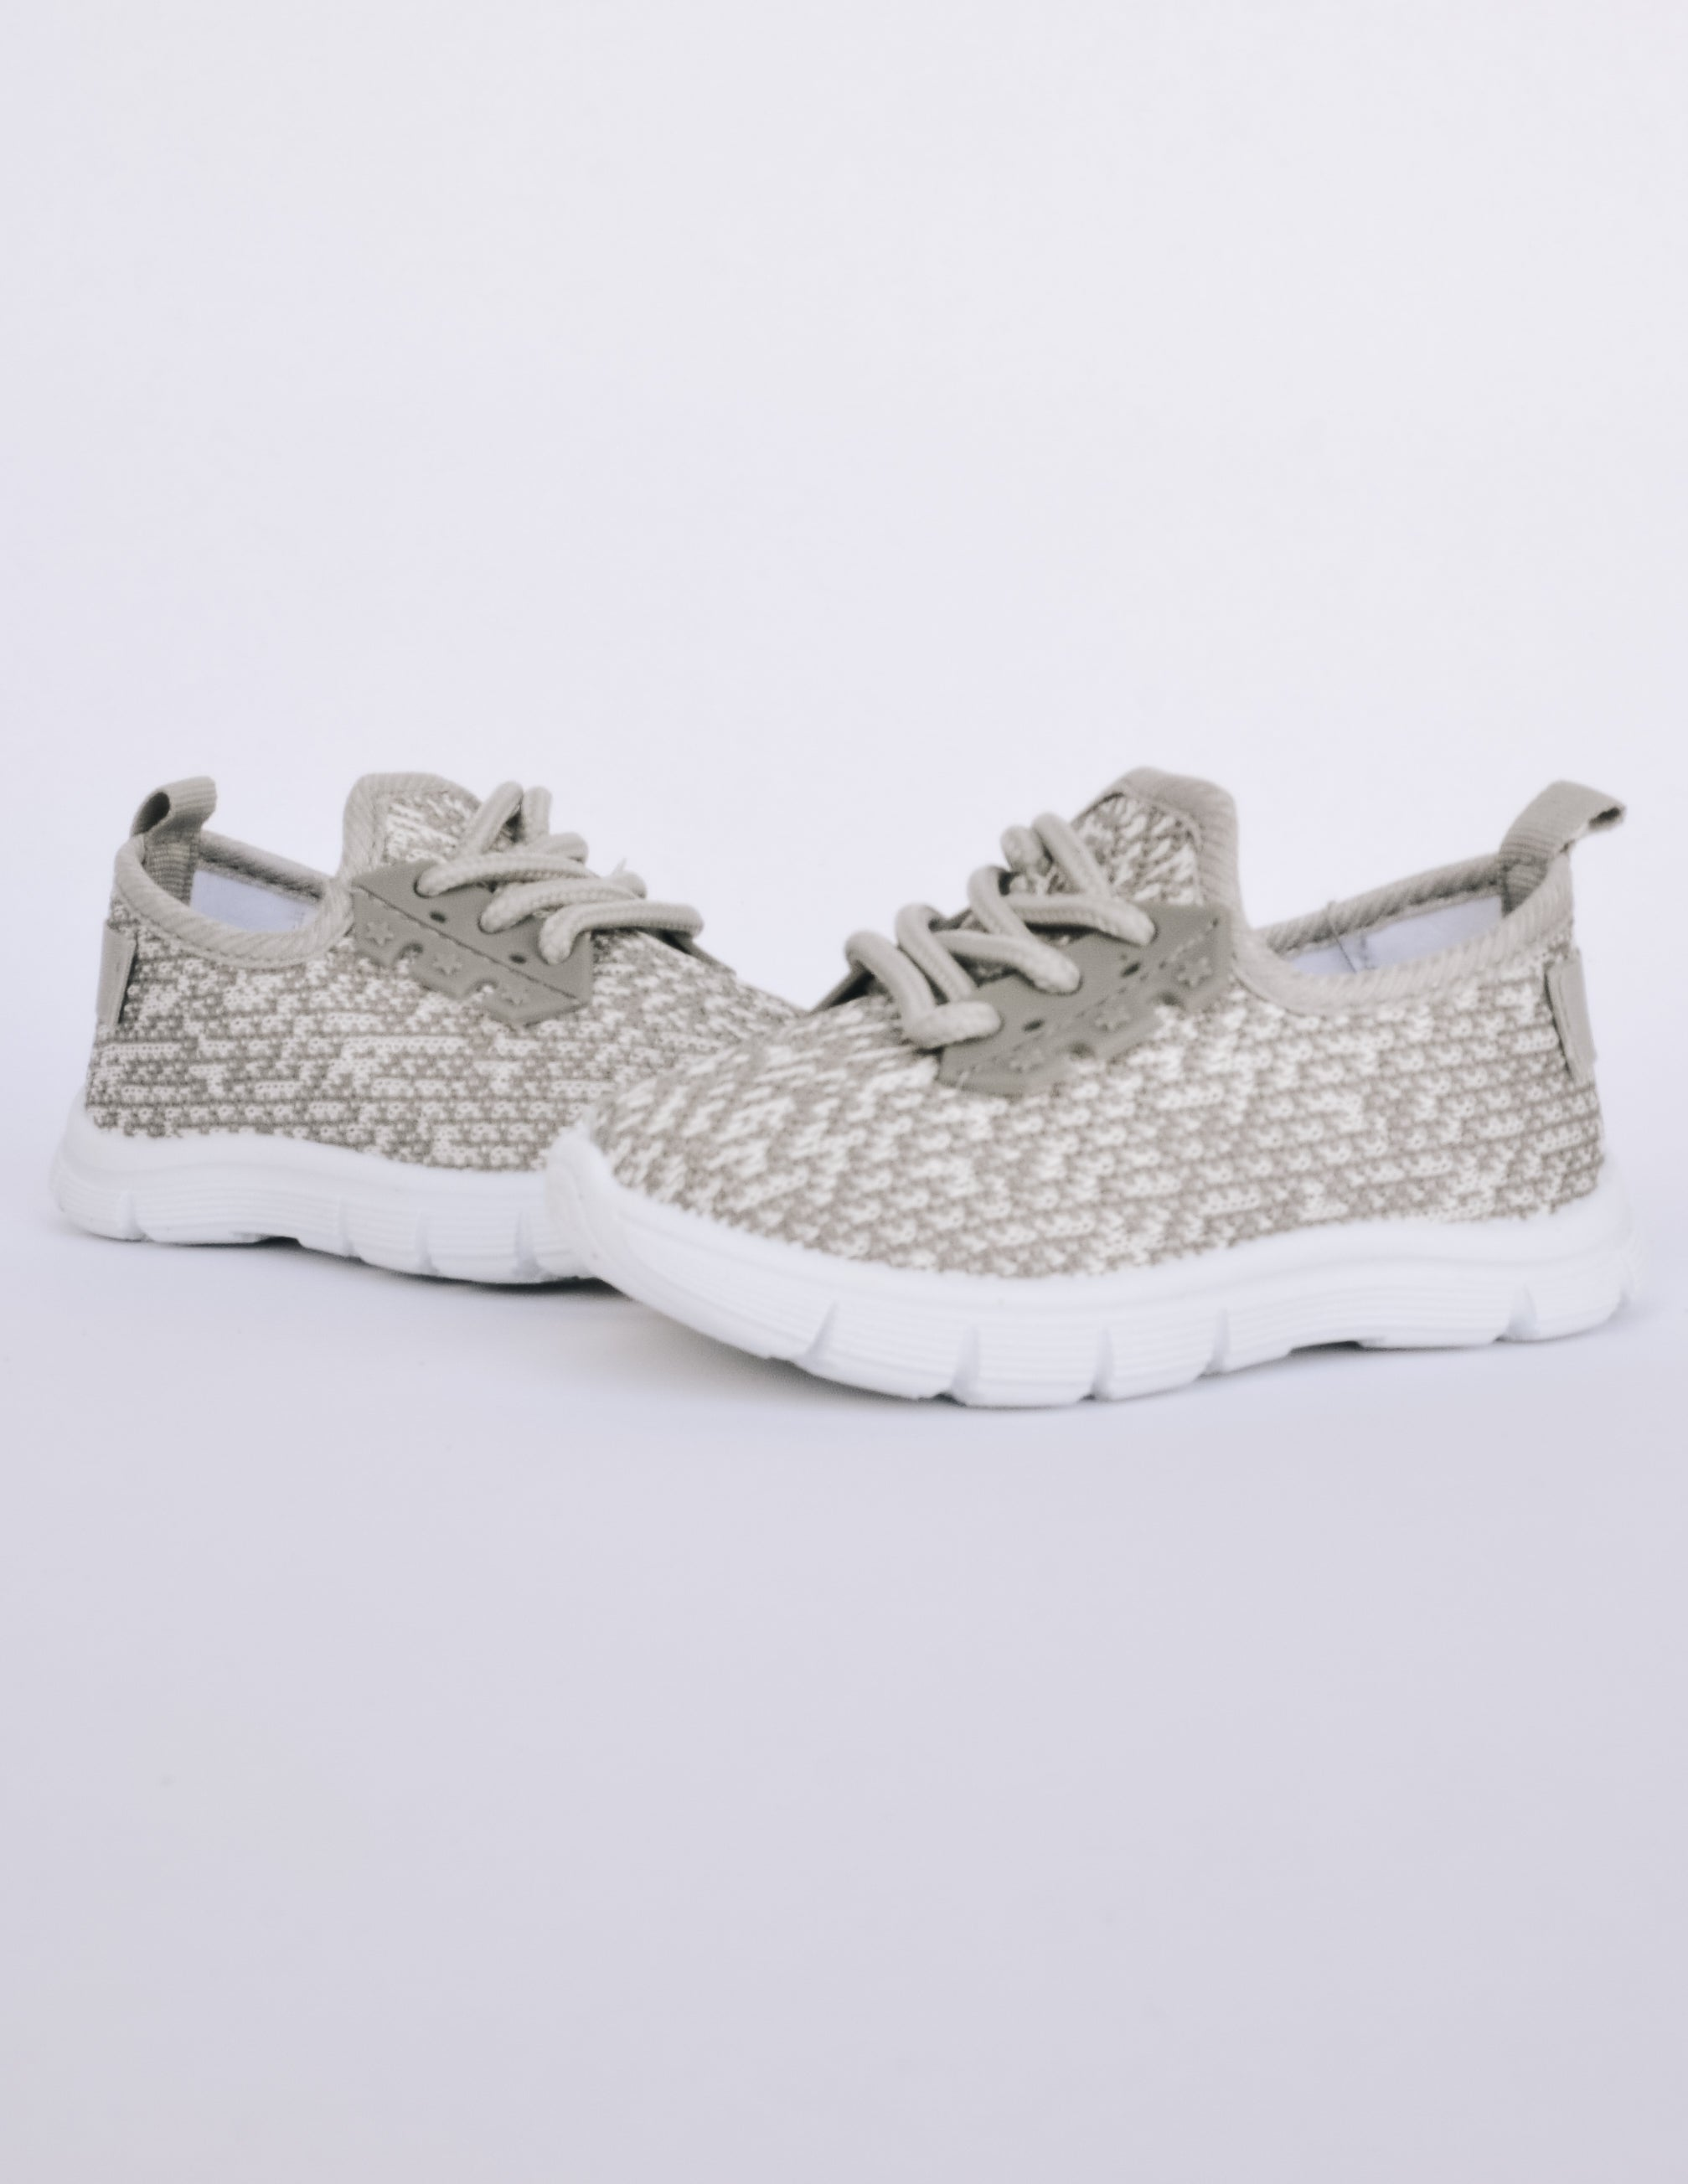 LIL DREAMER TODDLER SNEAKER - GREY - Elle Bleu Shoe Boutique